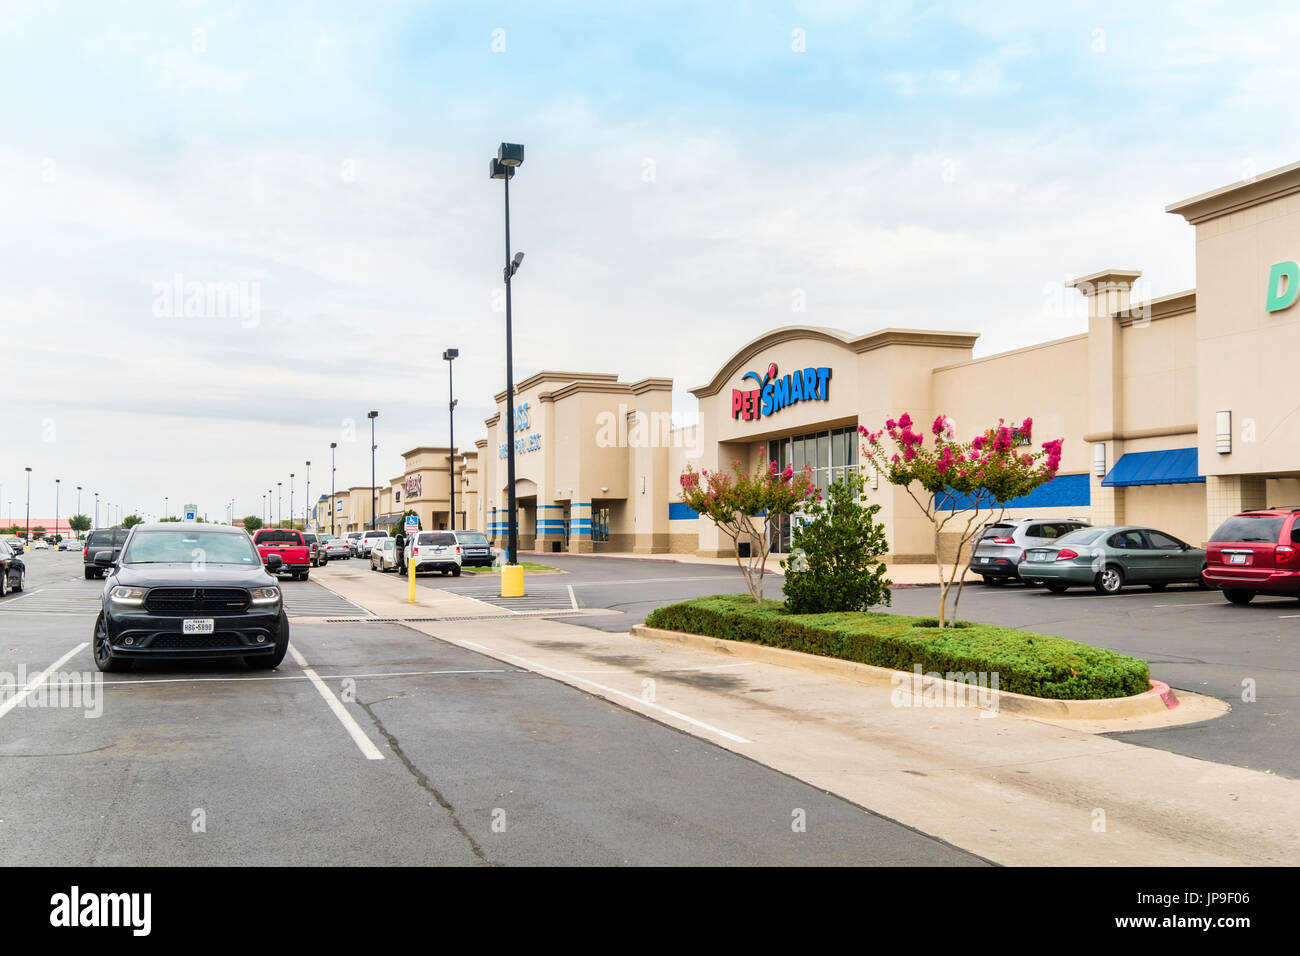 Wide angle of a strip mall and shopfronts in Oklahoma City, Oklahoma, USA. - Stock Image